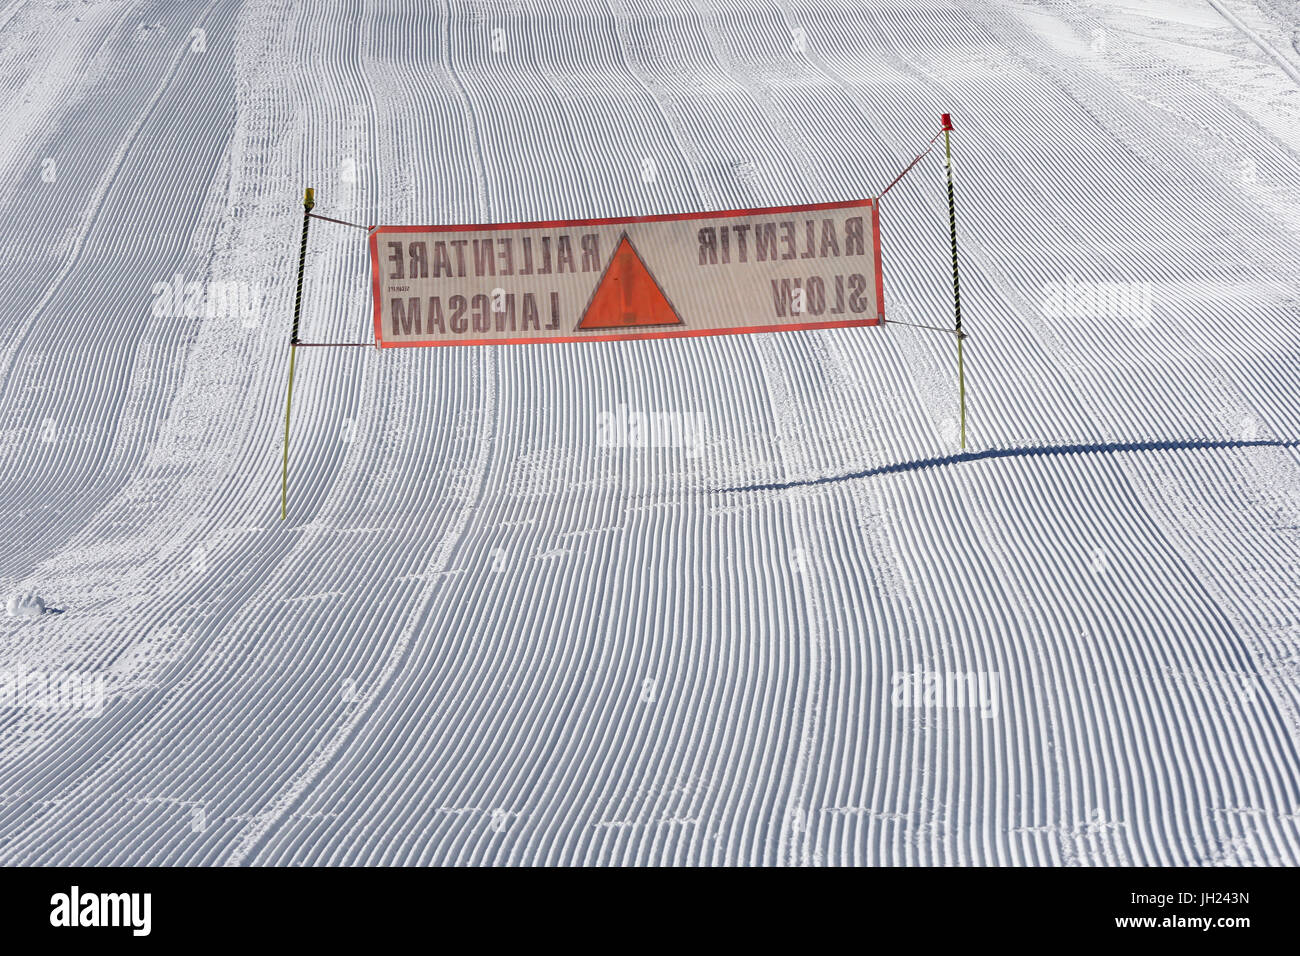 French Alps. Skiers slow sign. Groomed Ski Piste. France. - Stock Image